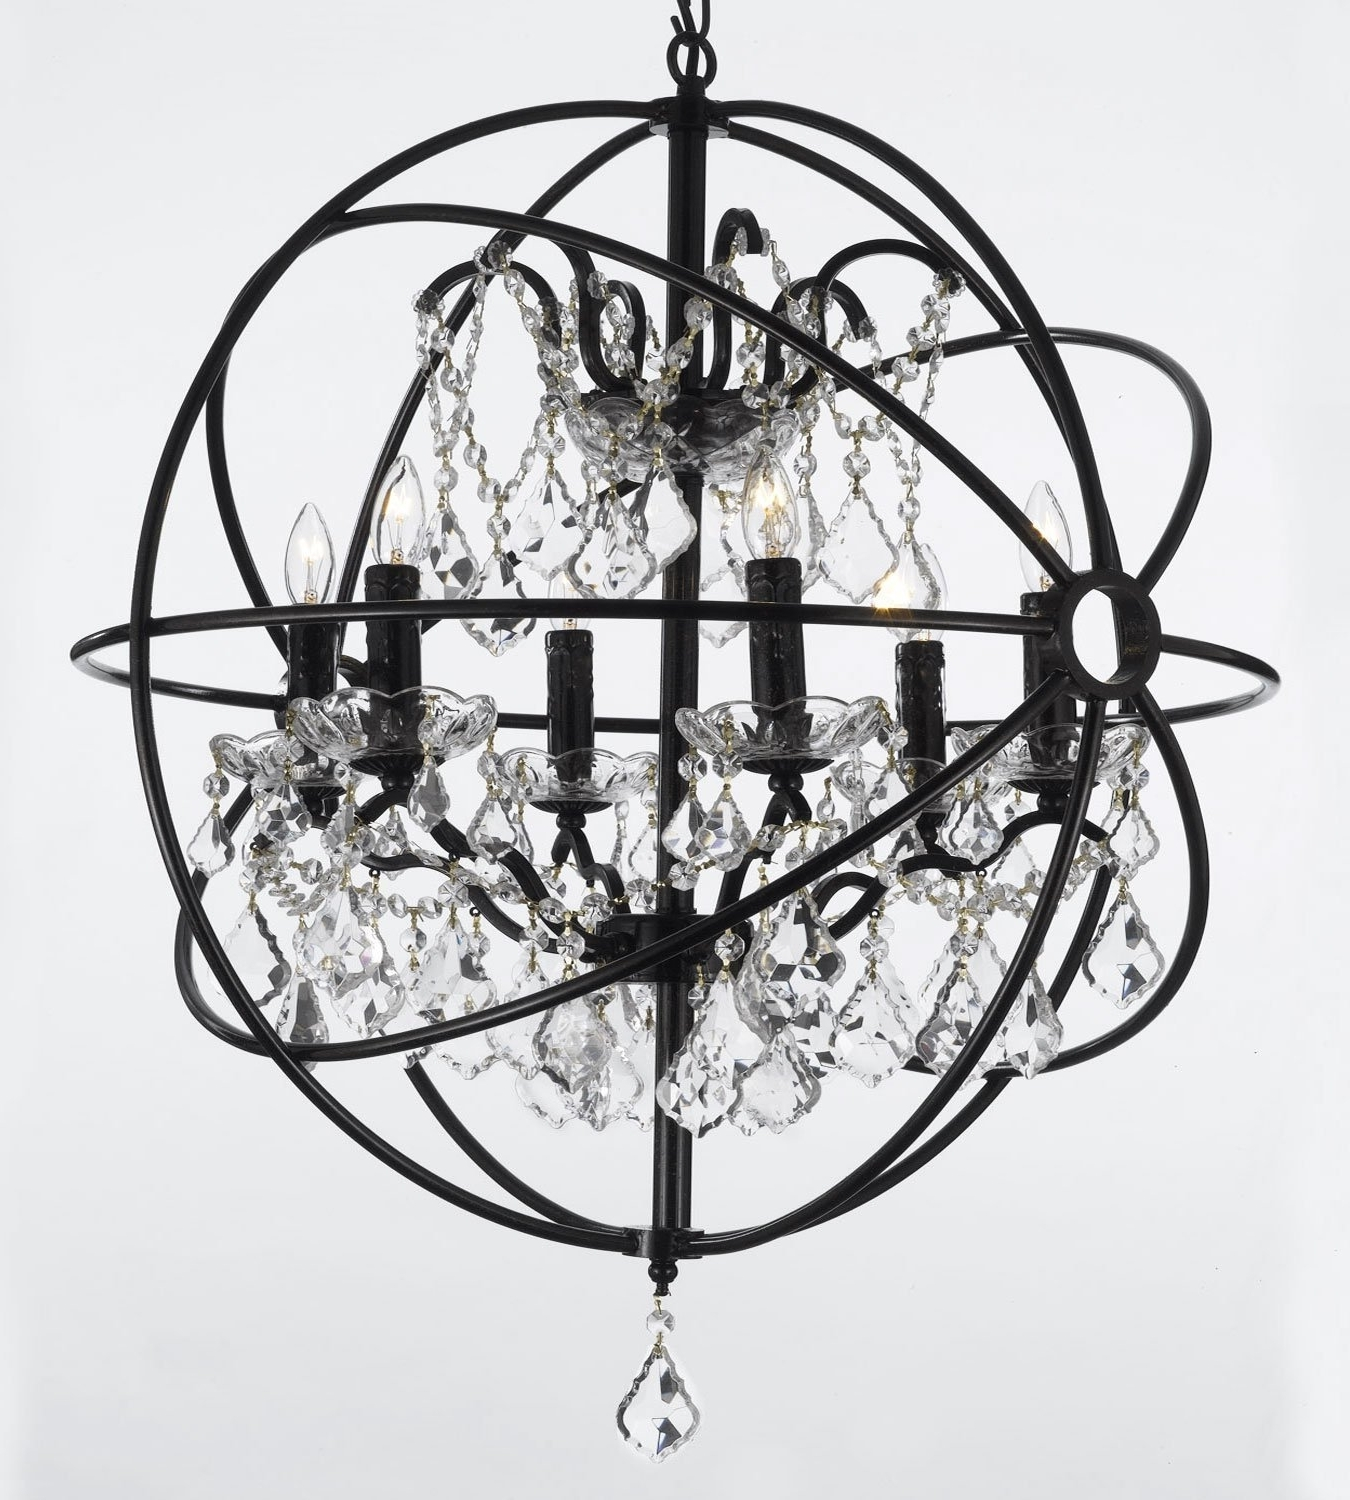 Trendy Wrought Iron Chandeliers Pertaining To Foucault's Orb Wrought Iron Crystal Chandelier Lighting Country (View 8 of 15)